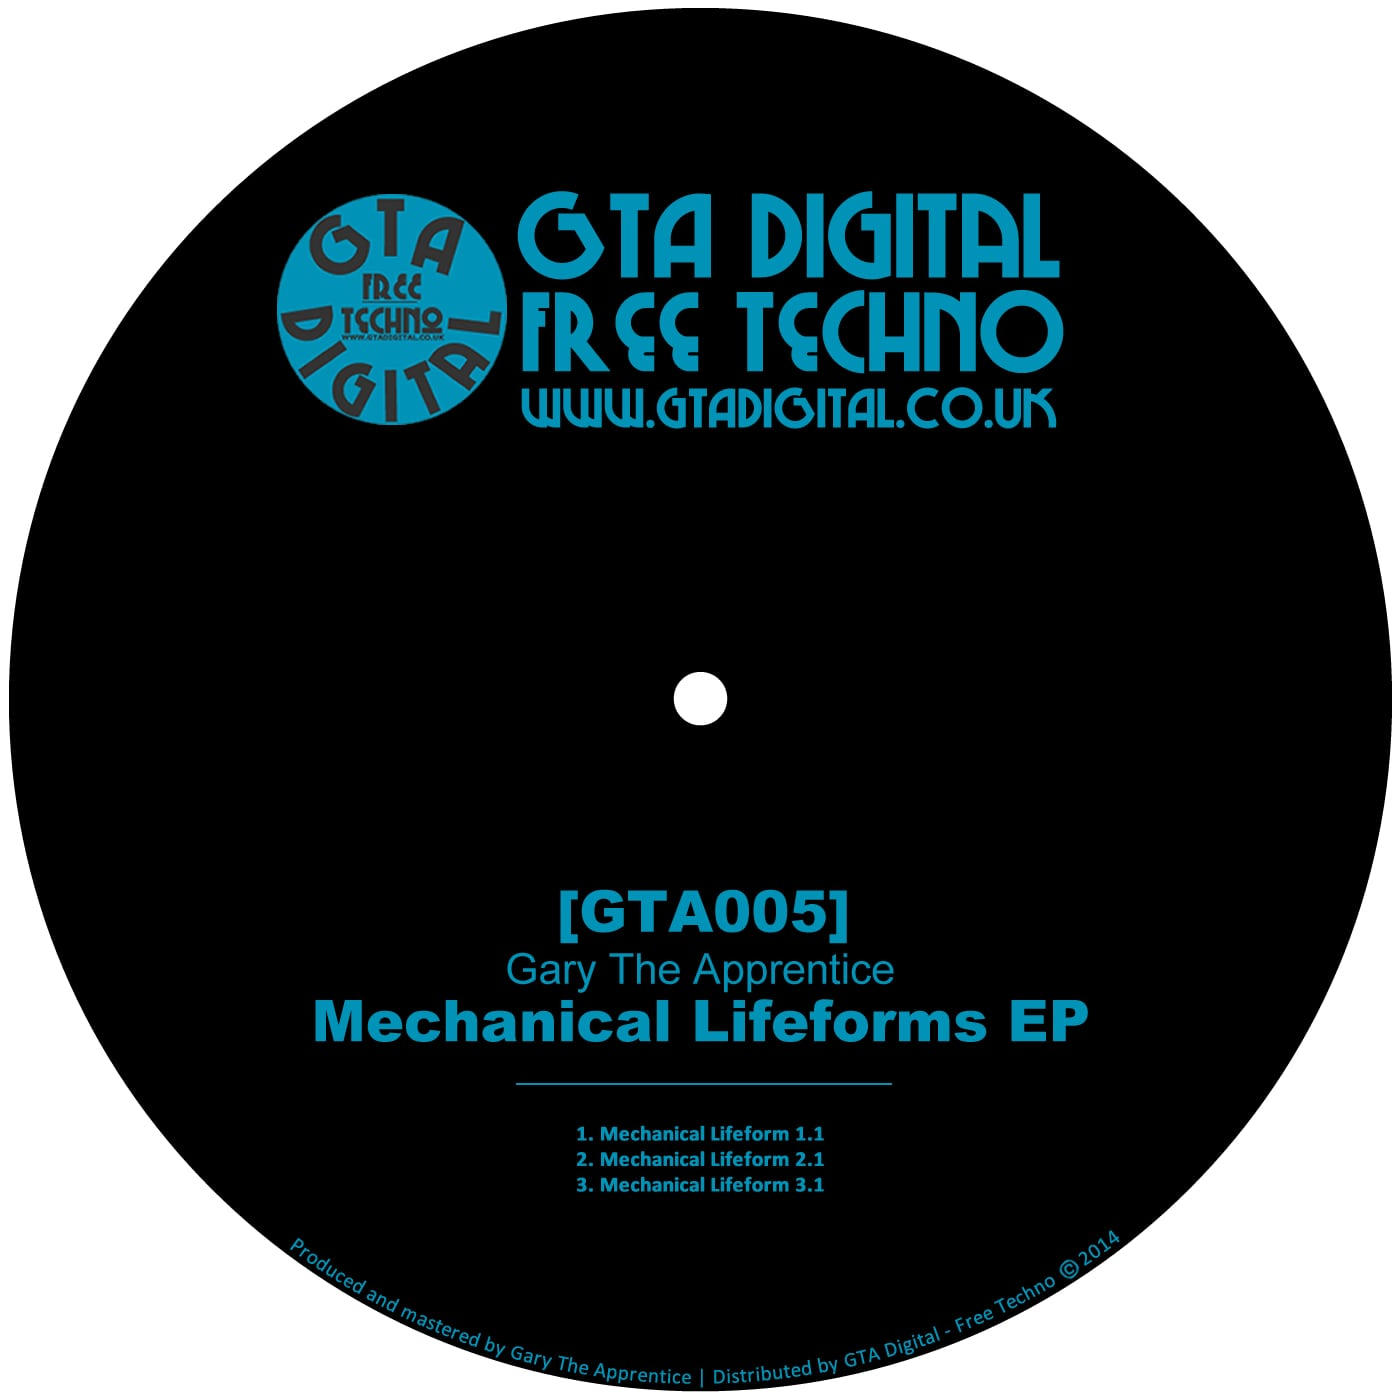 Mechanical Lifeforms EP